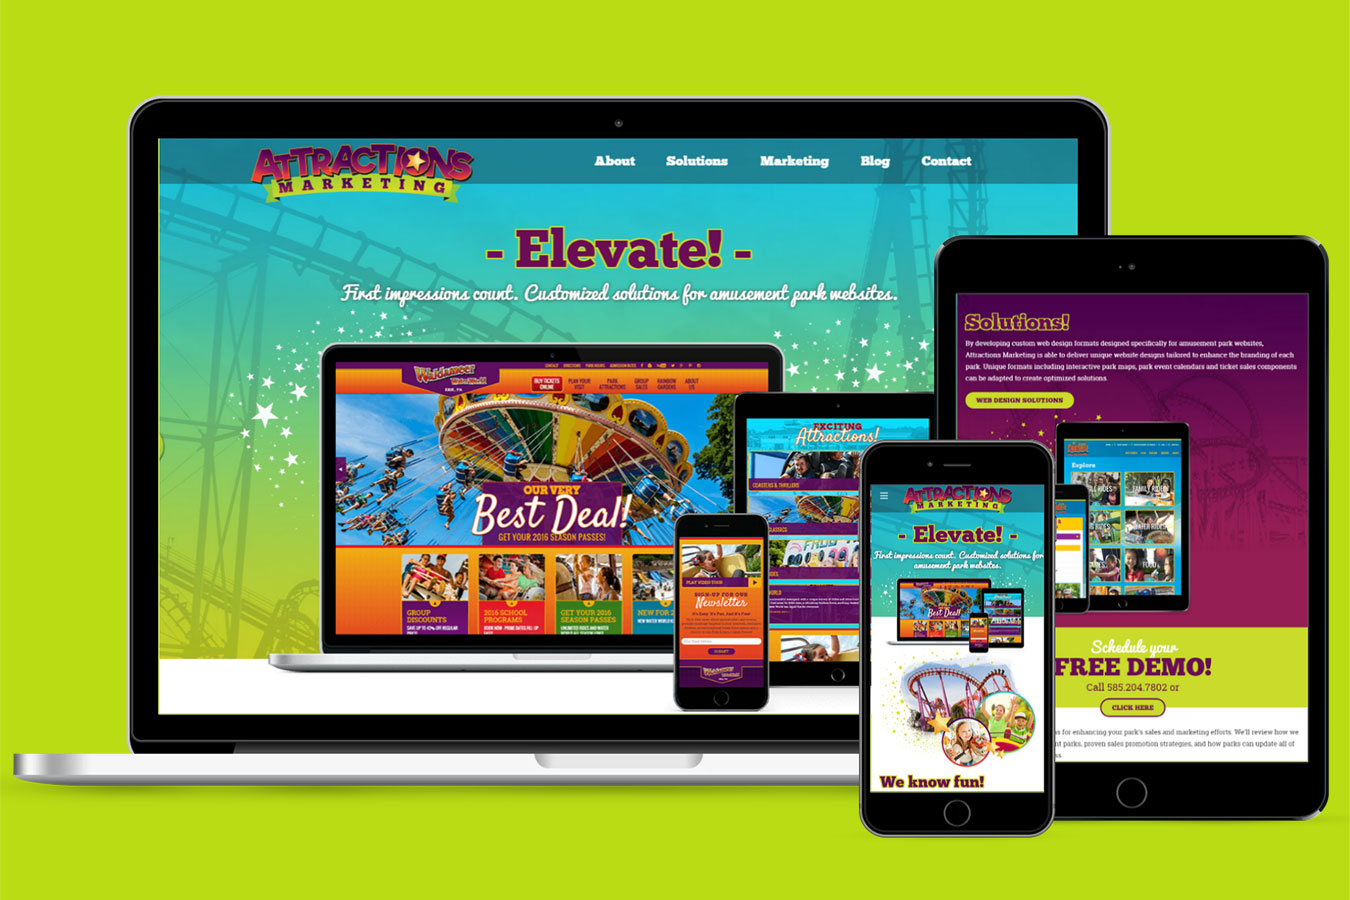 Attractions Marketing on multiple devices, green background